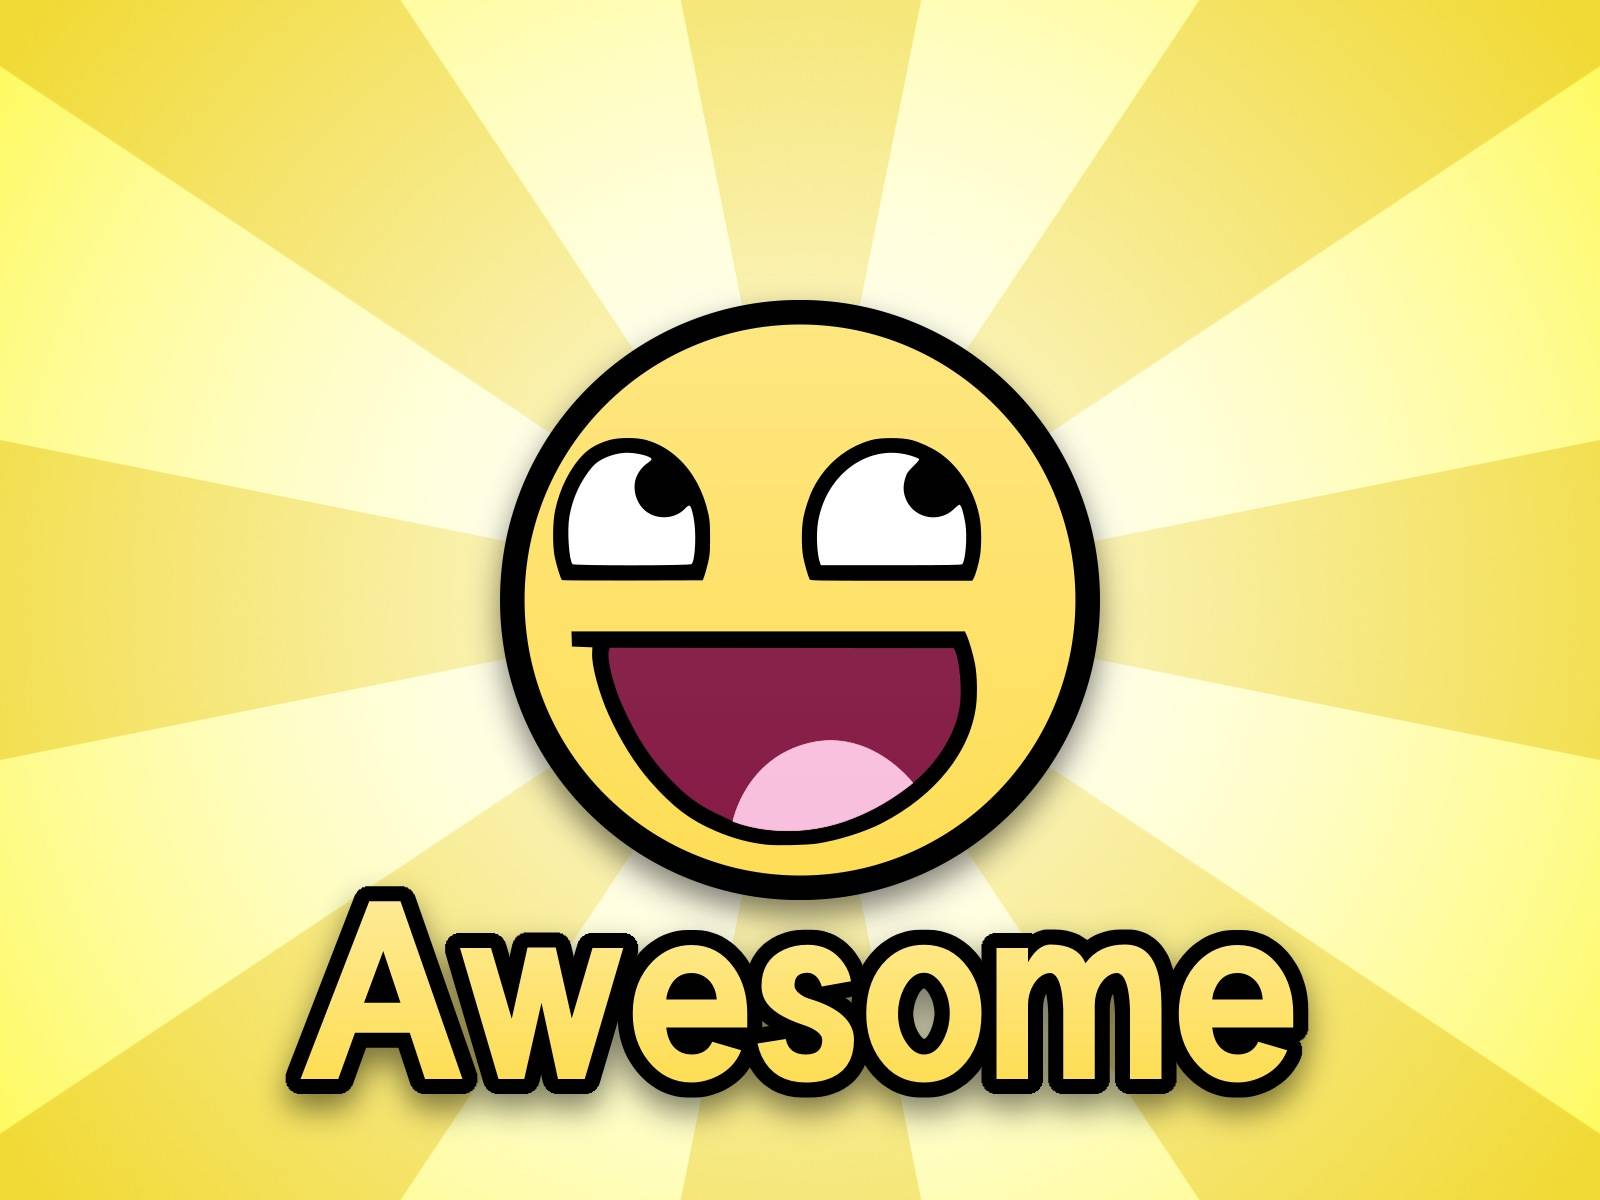 Happy face wallpaper clipart best for Awesome englisch